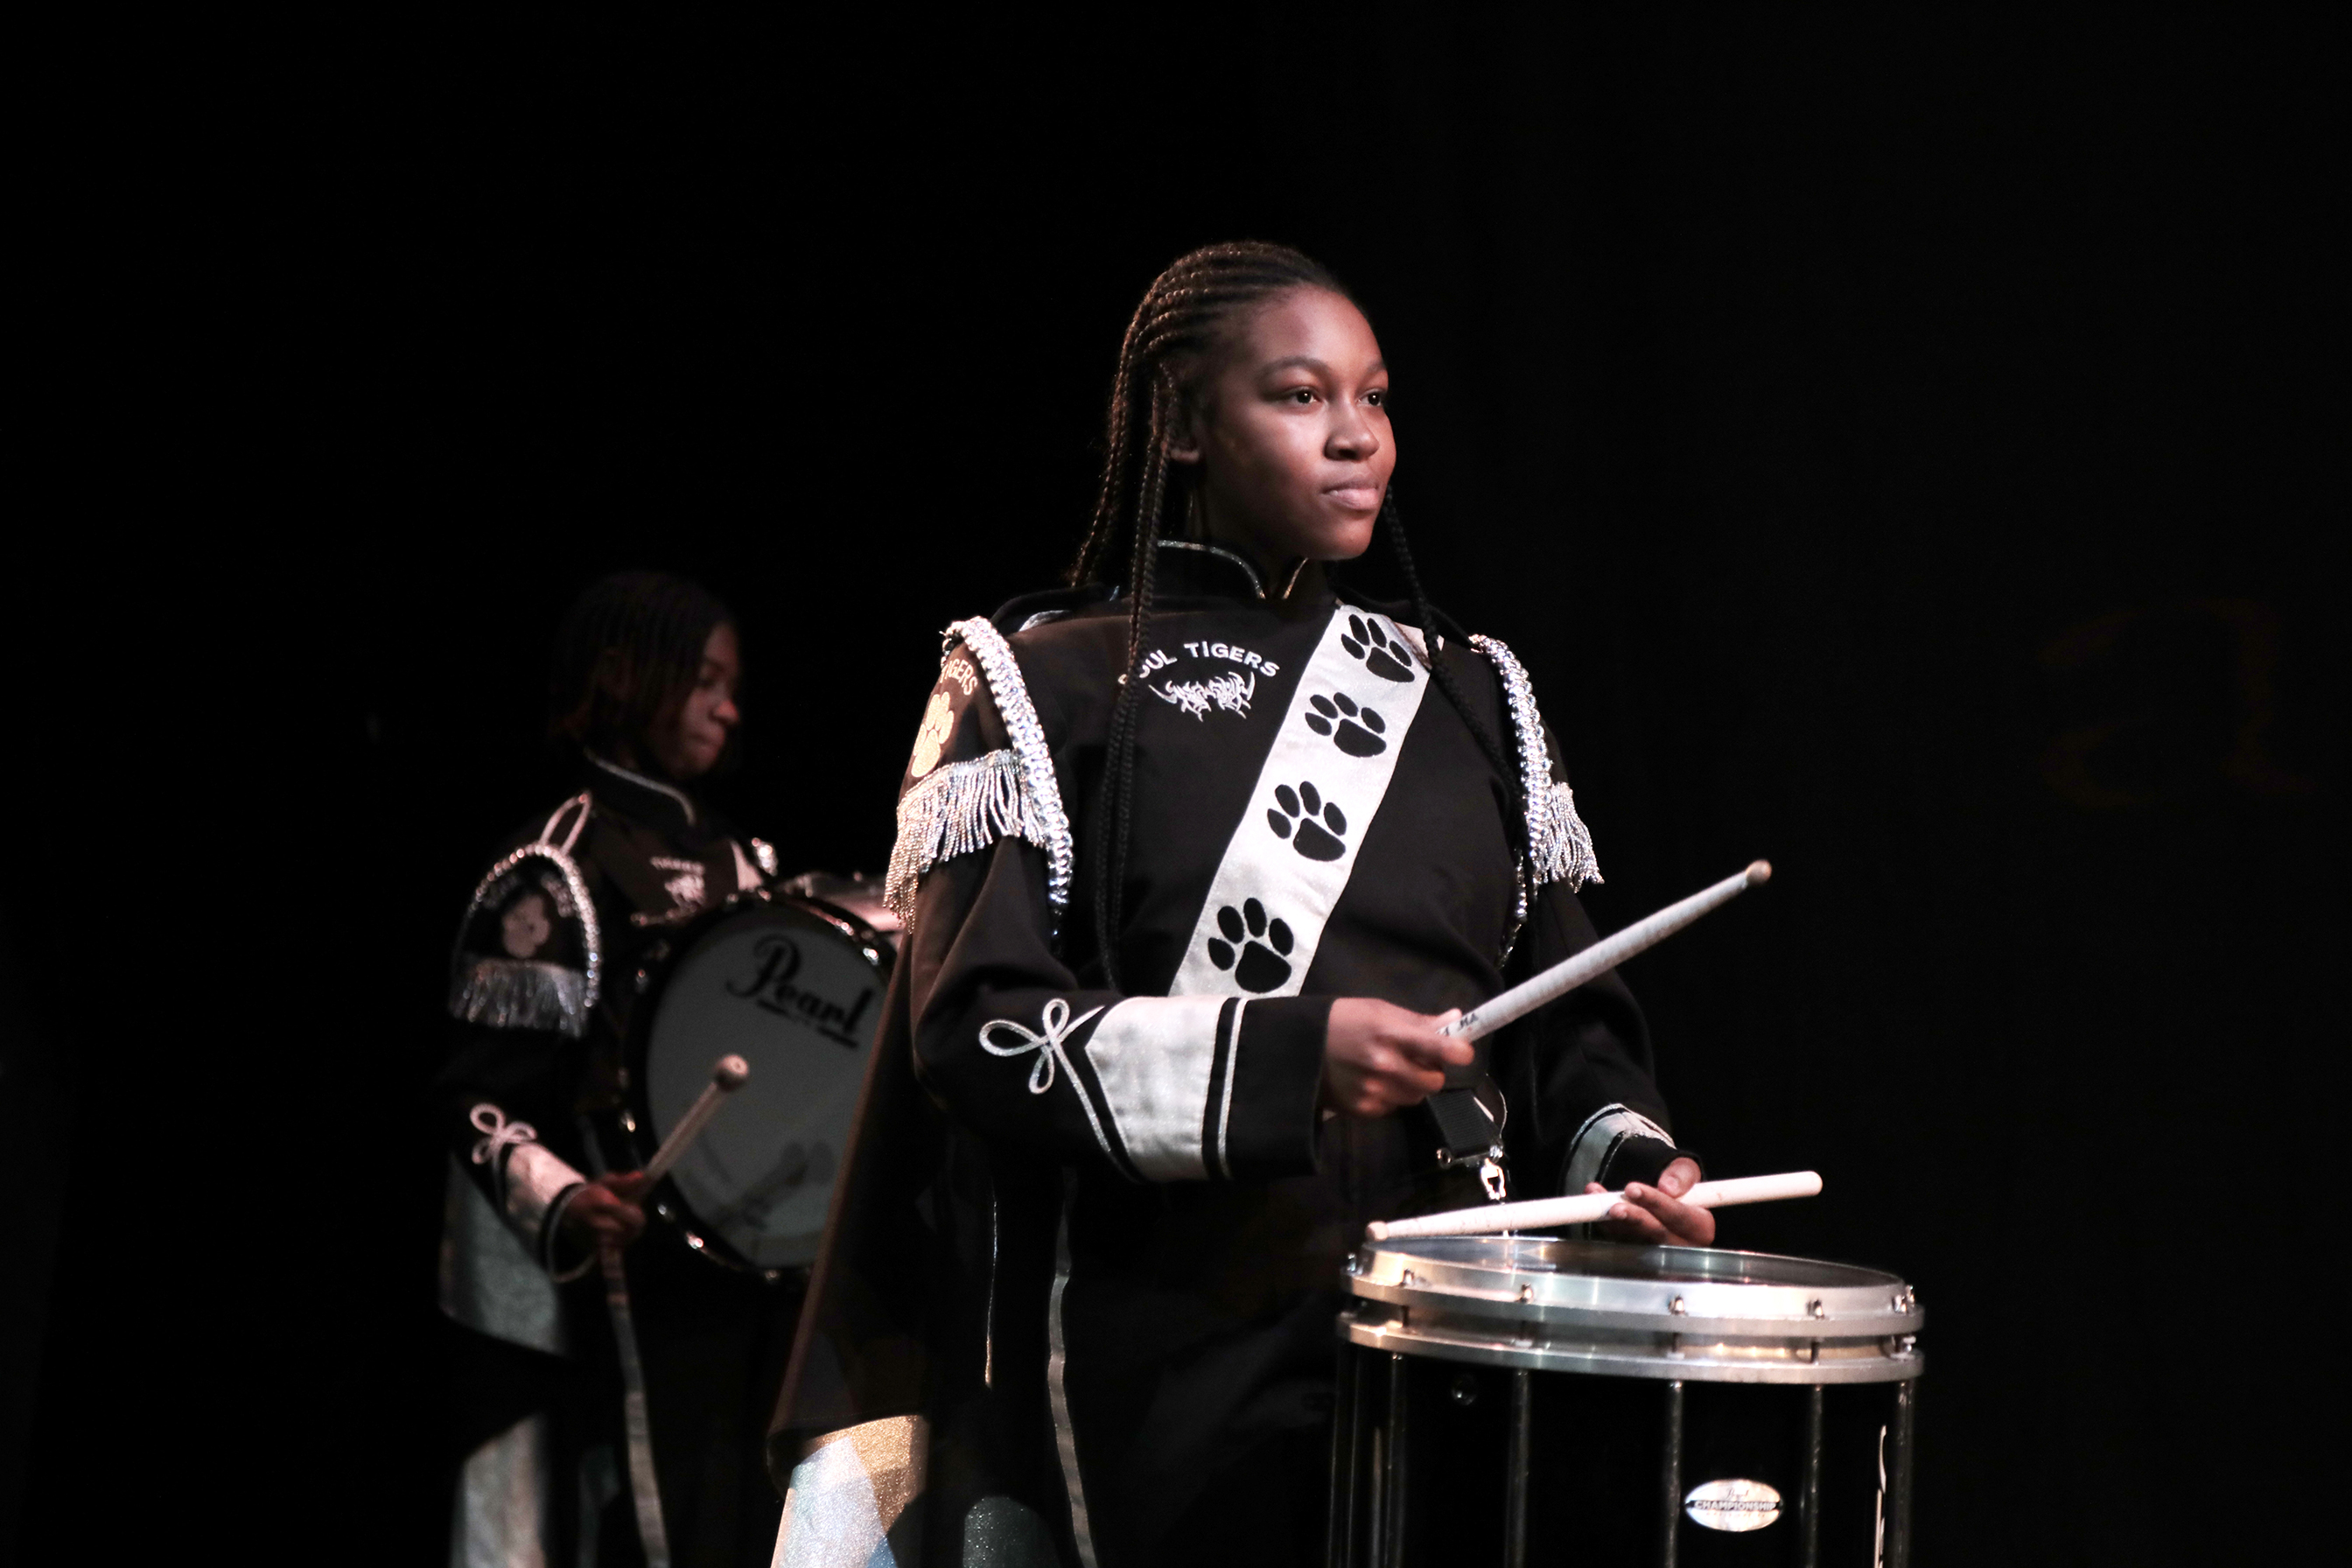 performer in a band uniform holding a drum